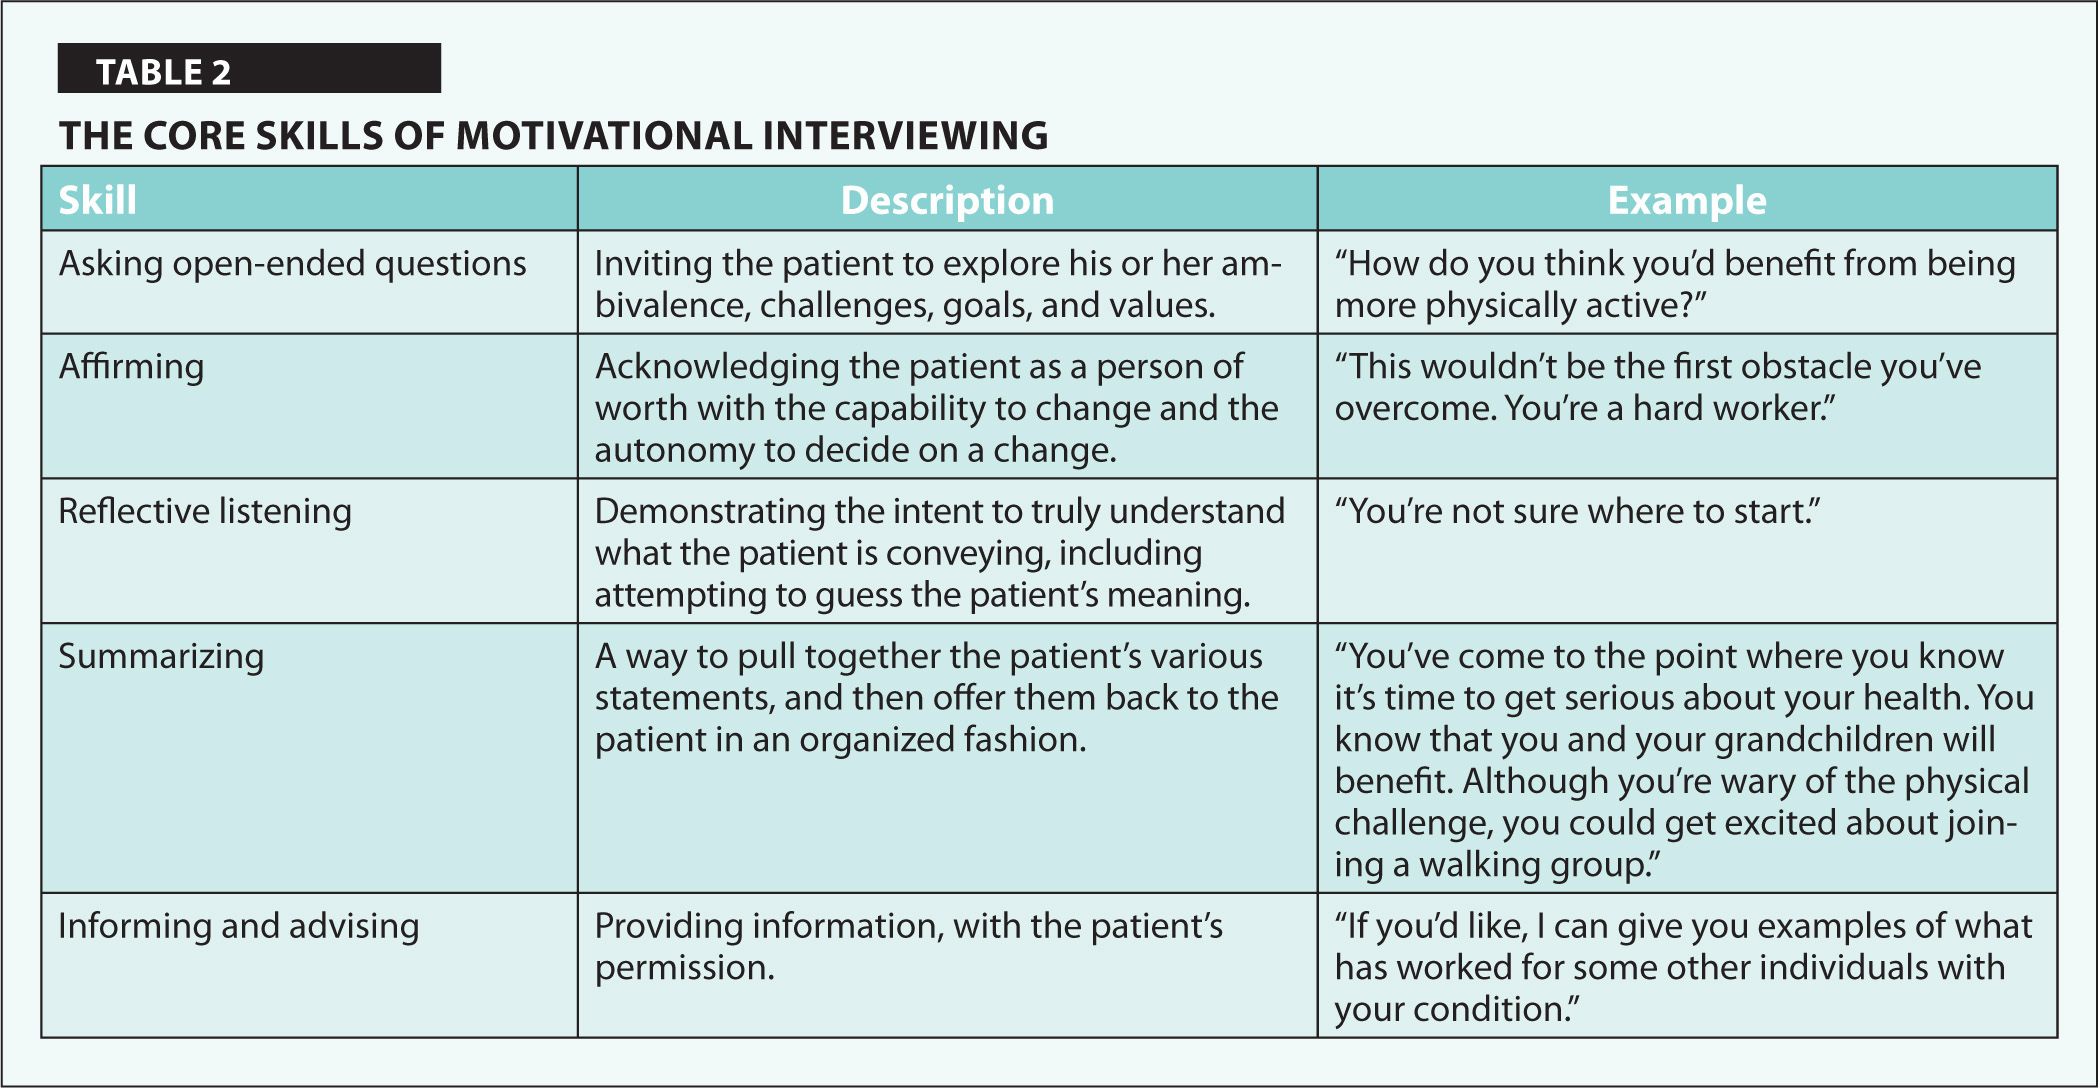 The Core Skills of Motivational Interviewing